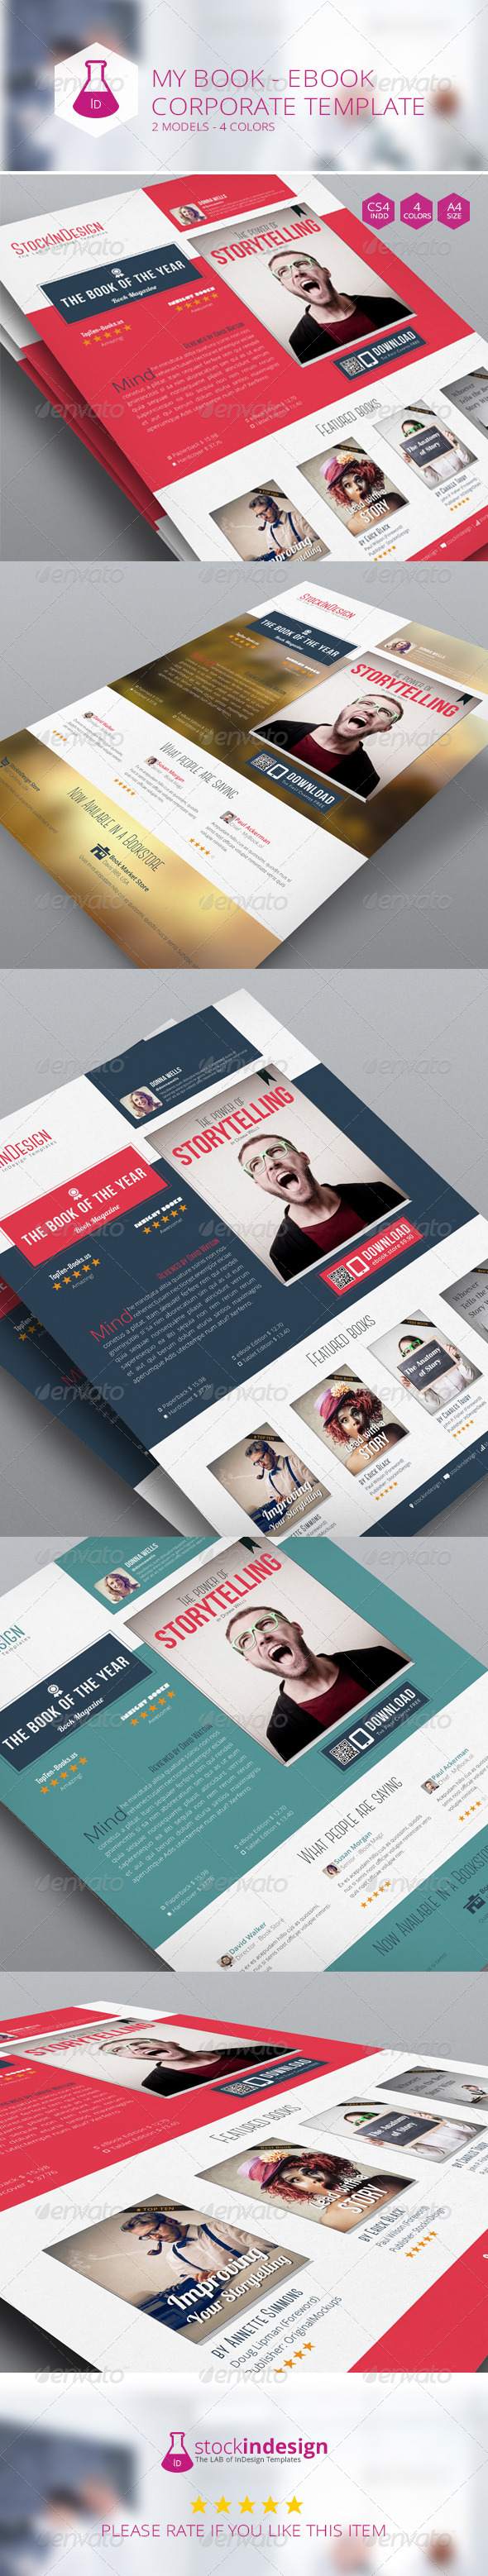 GraphicRiver My Book Ebook Promotion Flat Design 7162463